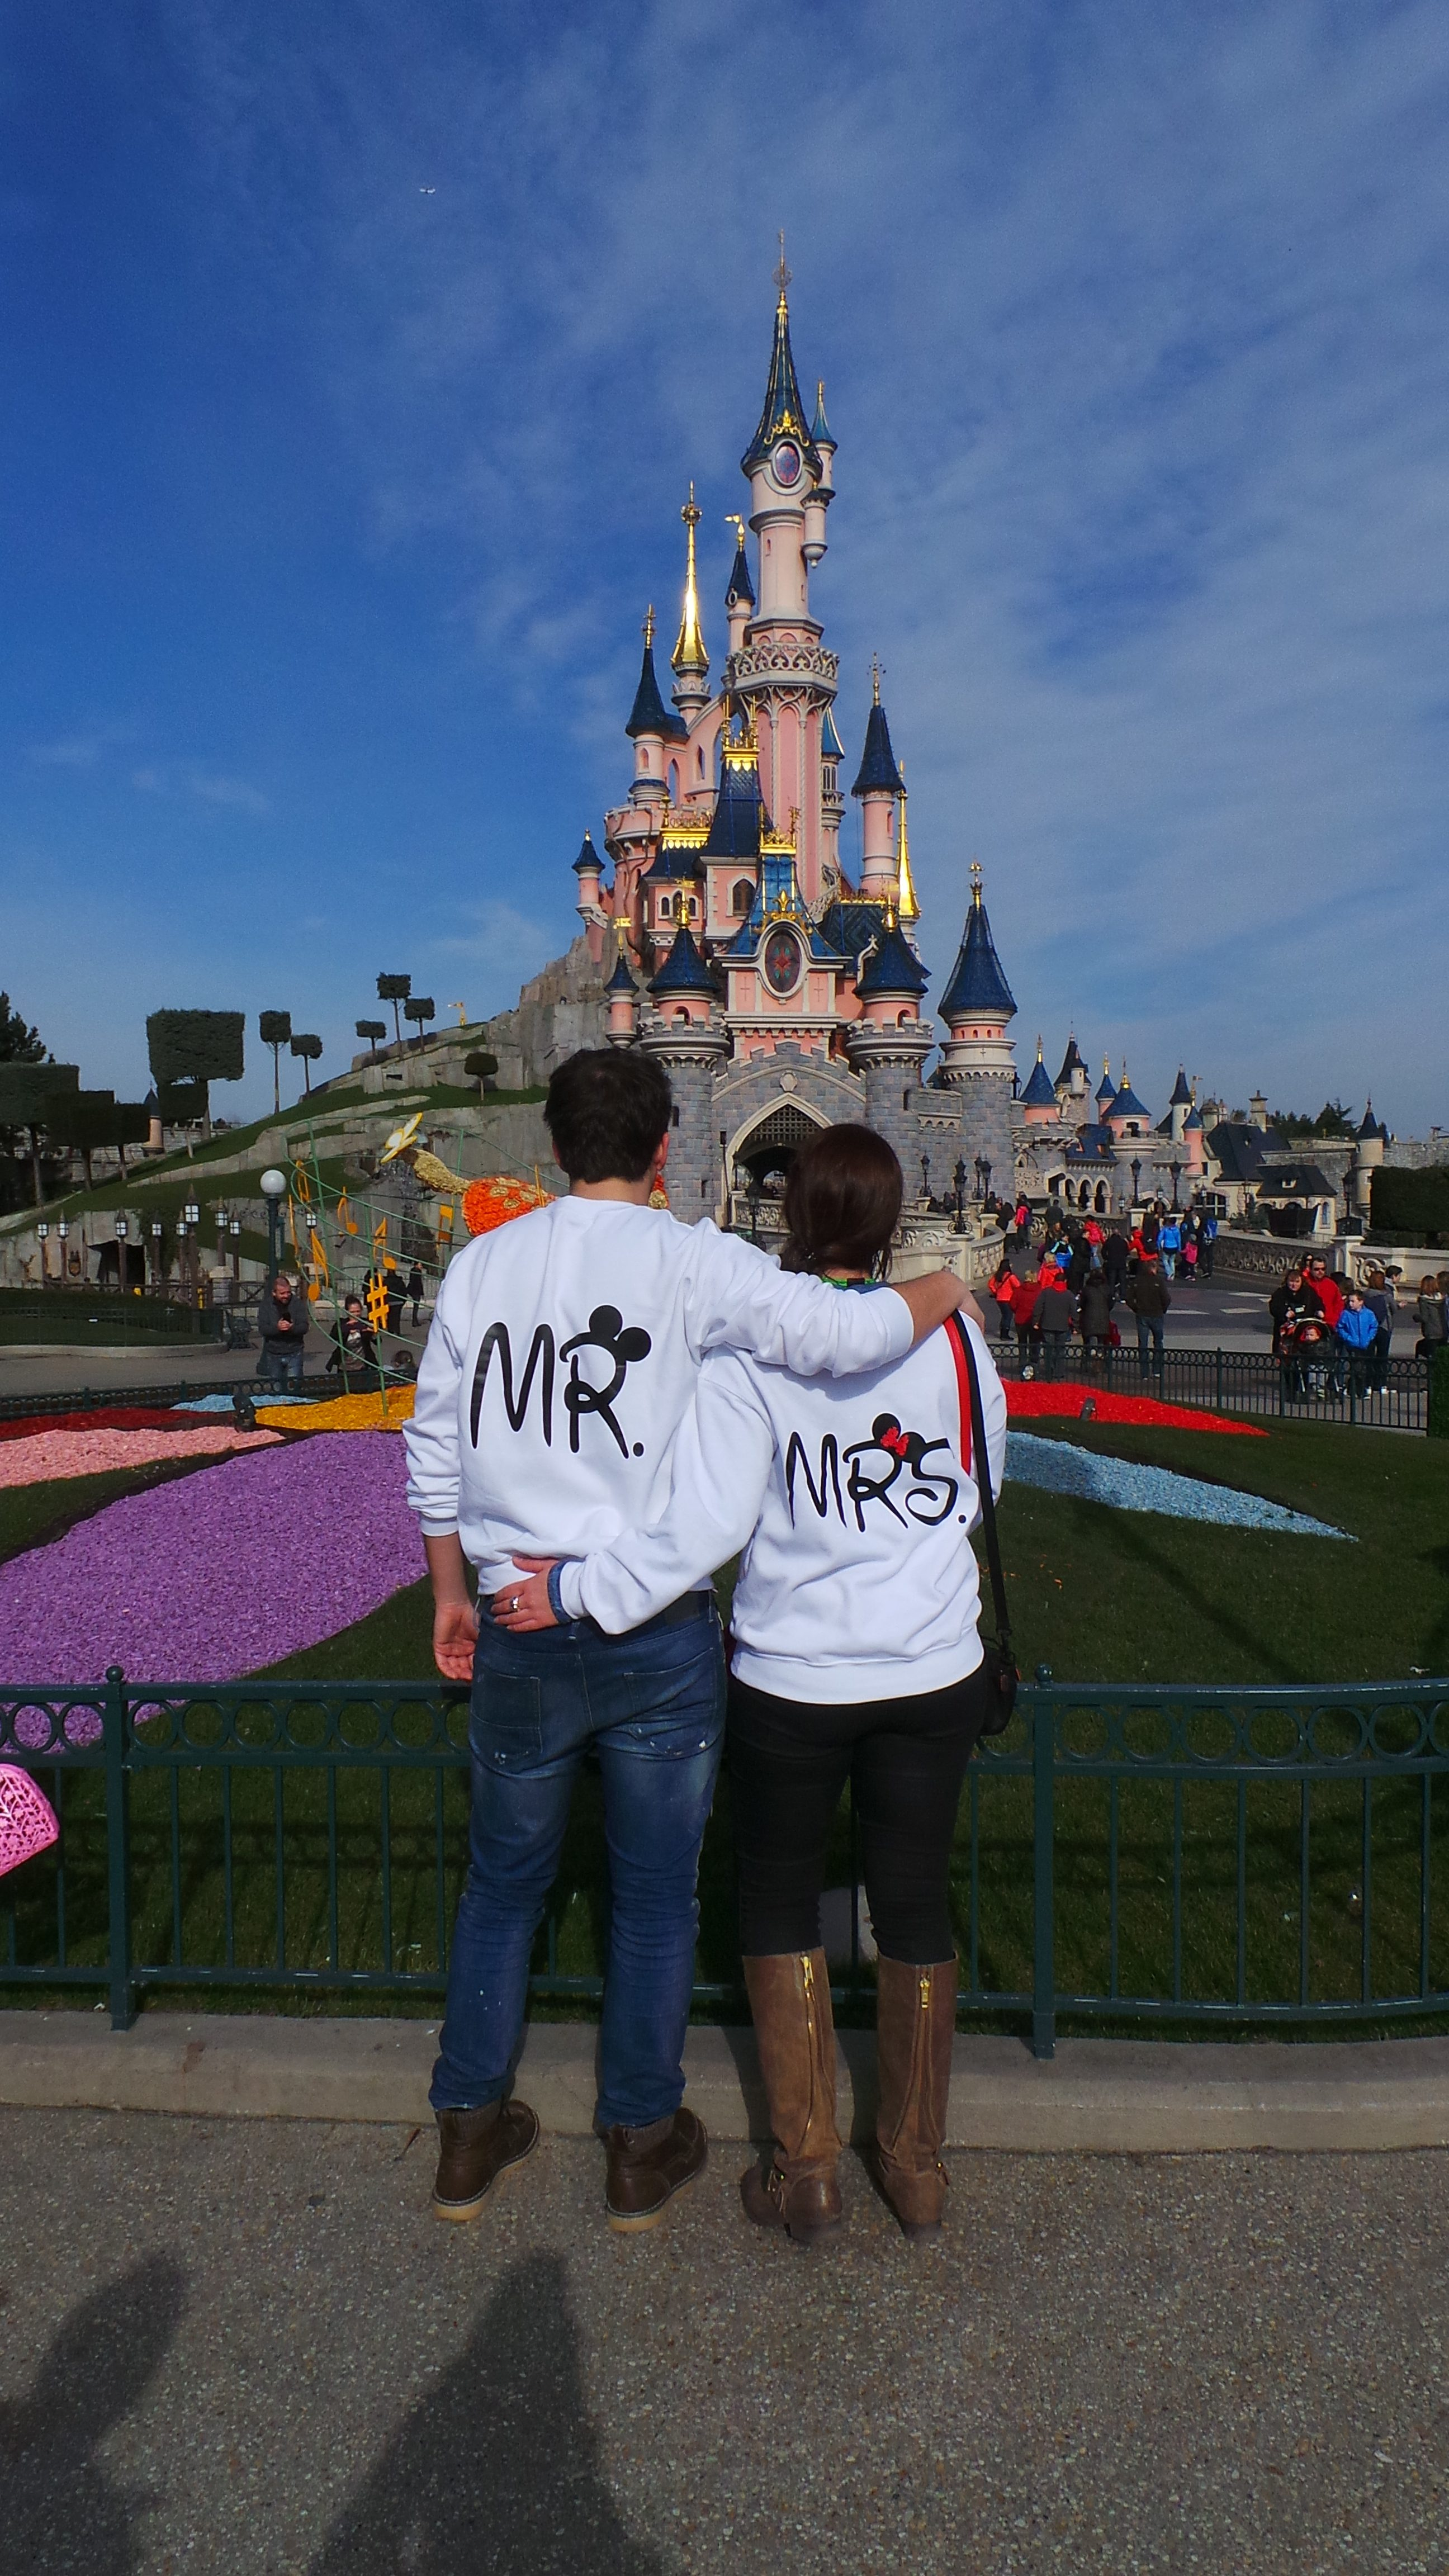 Minnie Mouse And Mickey Mouse Kissing >> Disney Mr Mrs Matching Couple Shirts With Mickey Minnie Mouse Kissing | Married with Mickey